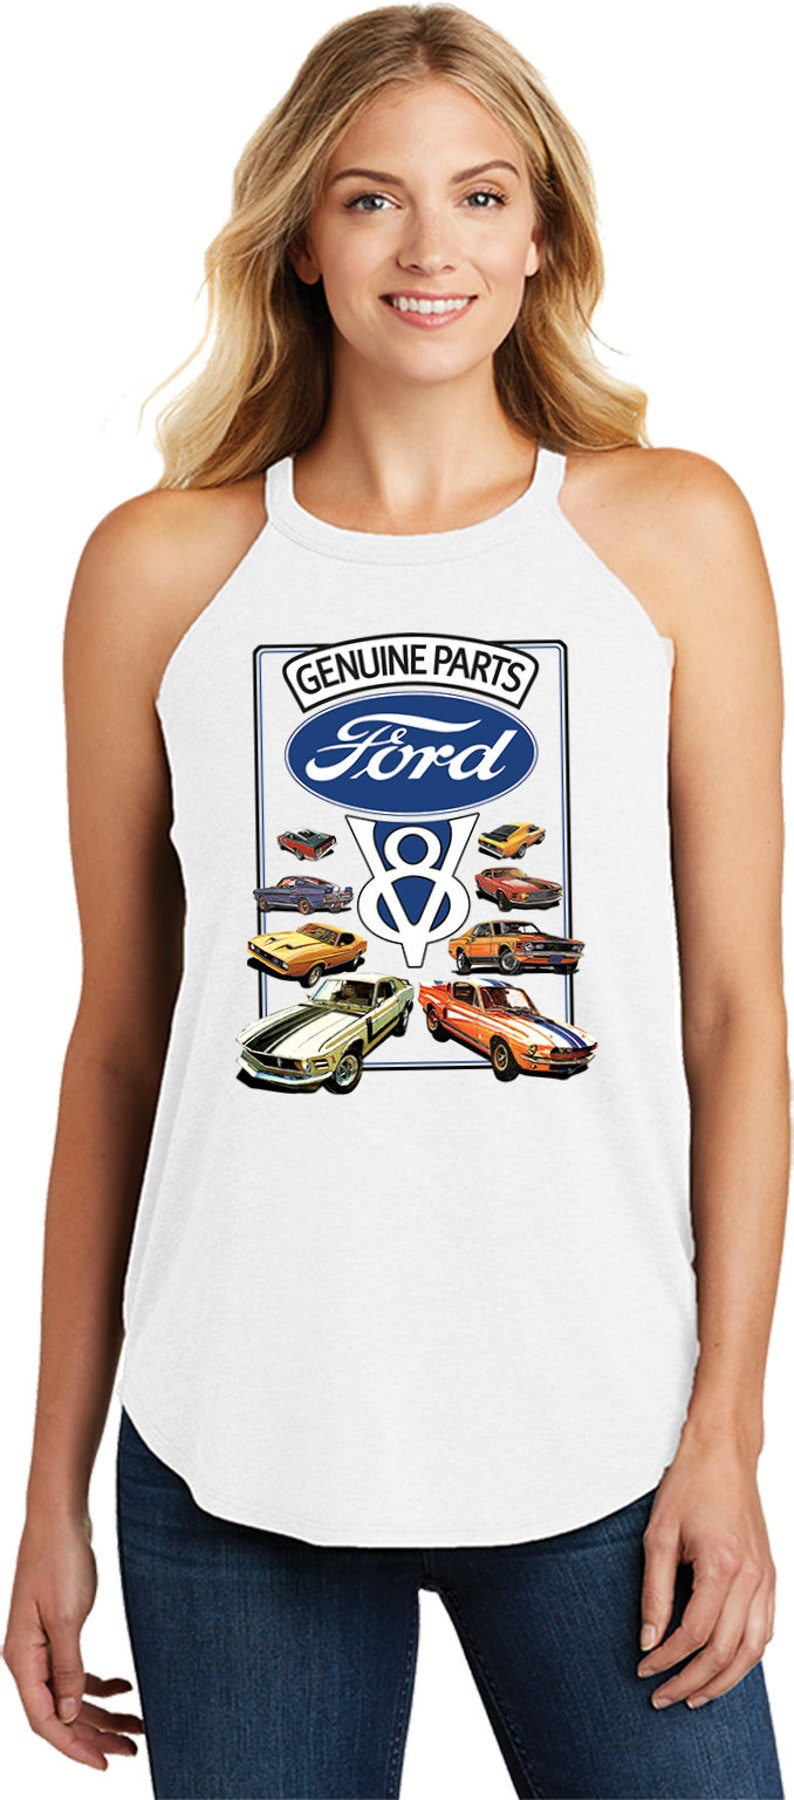 Mustang V8 Collection Genuine Ford Parts Ladies Ford Tri Blend Rocker Tank Top 22000HD2-DT137L